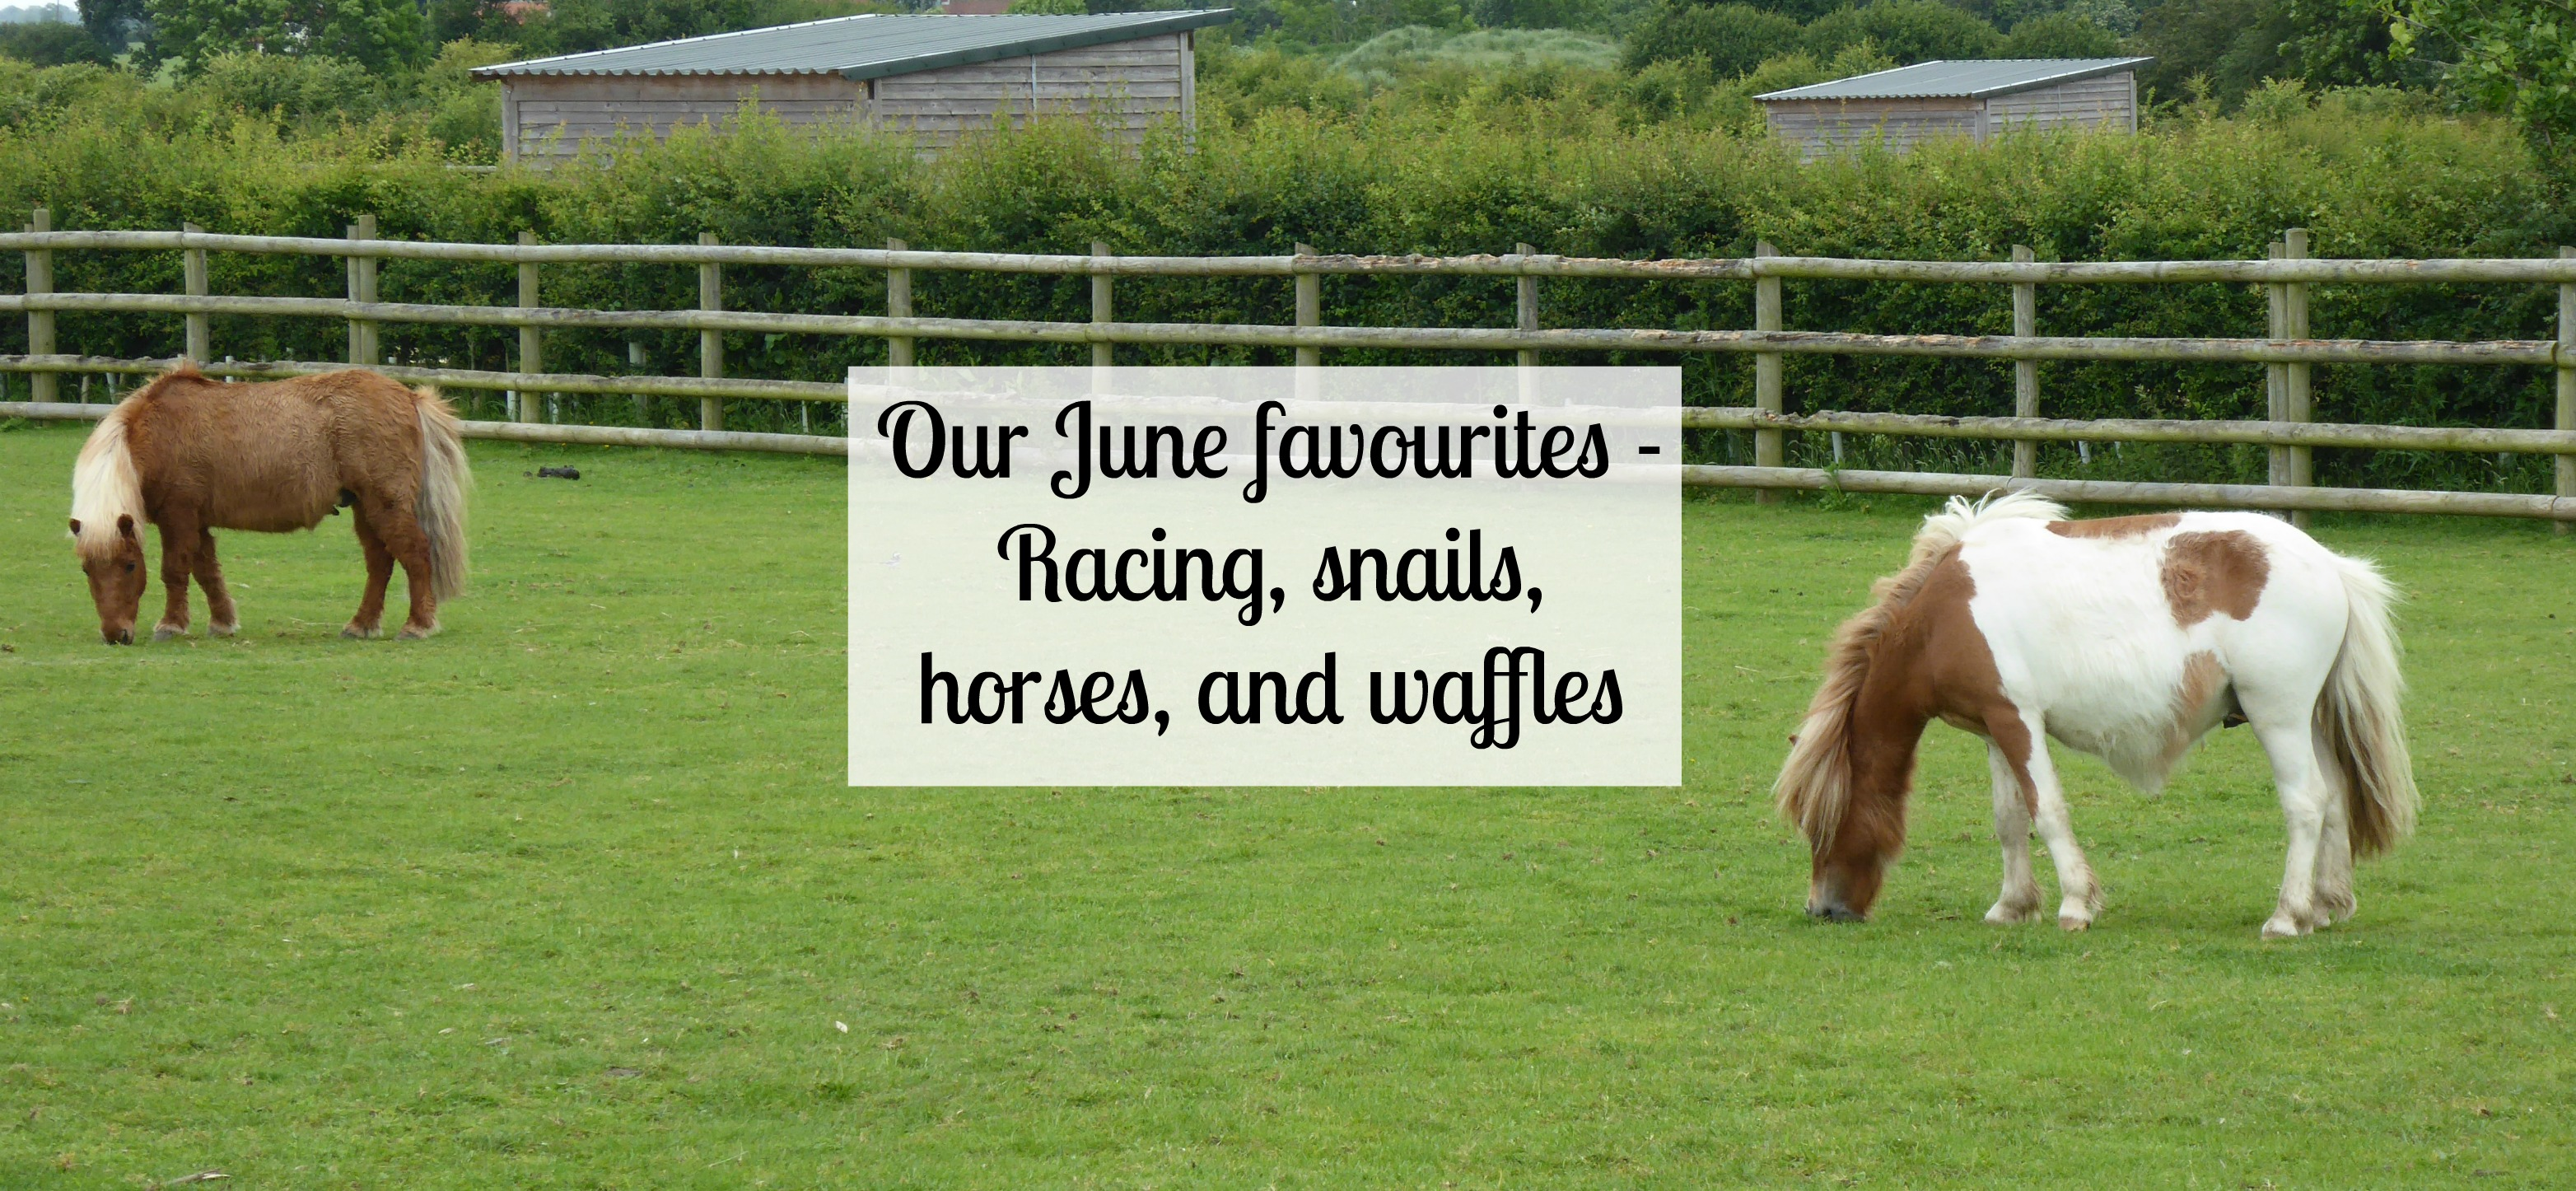 Our June favourites